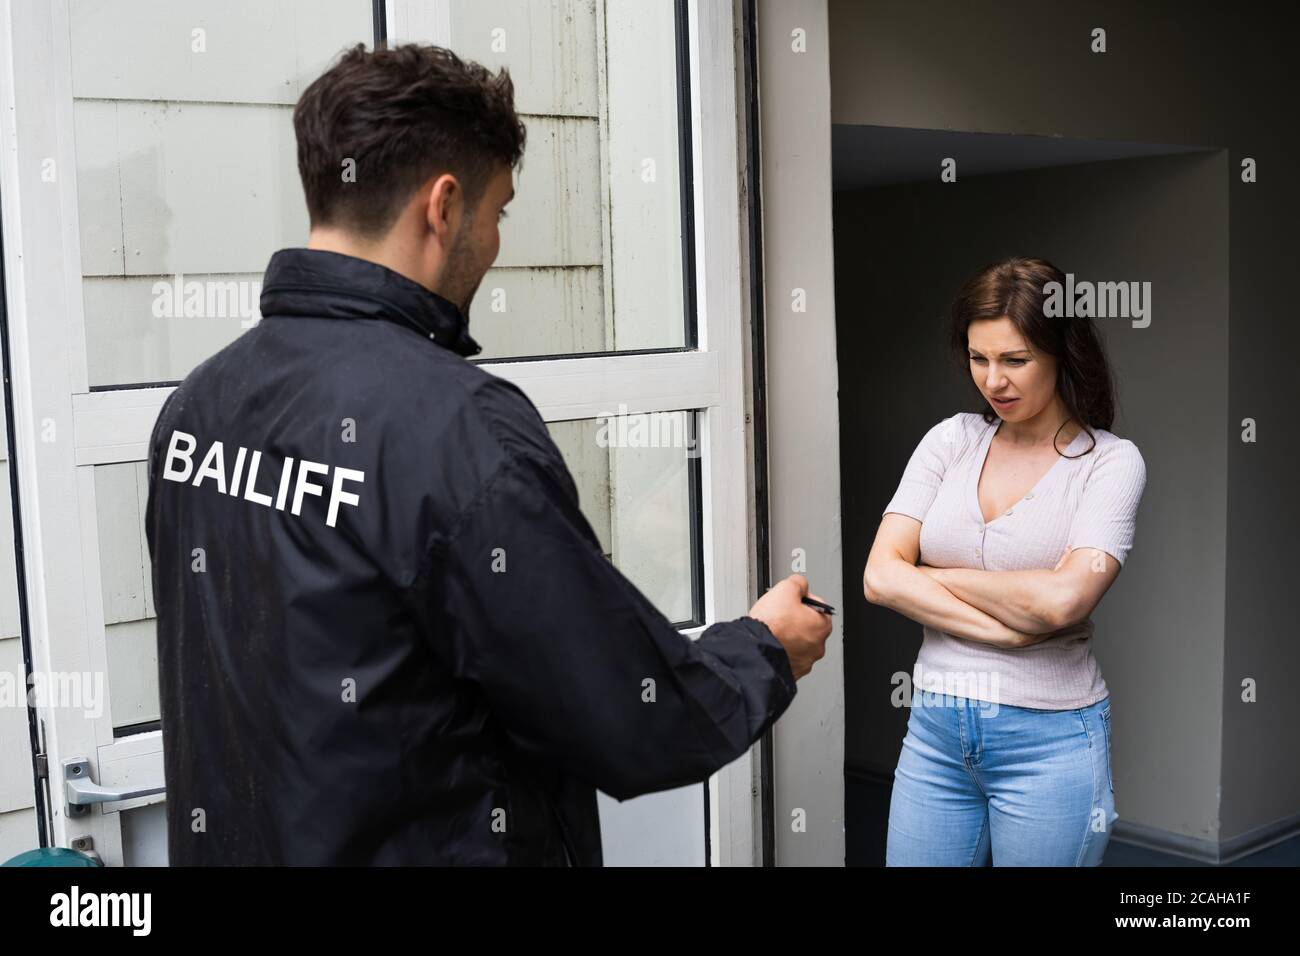 Bailiff High Resolution Stock Photography and Images - Alamy